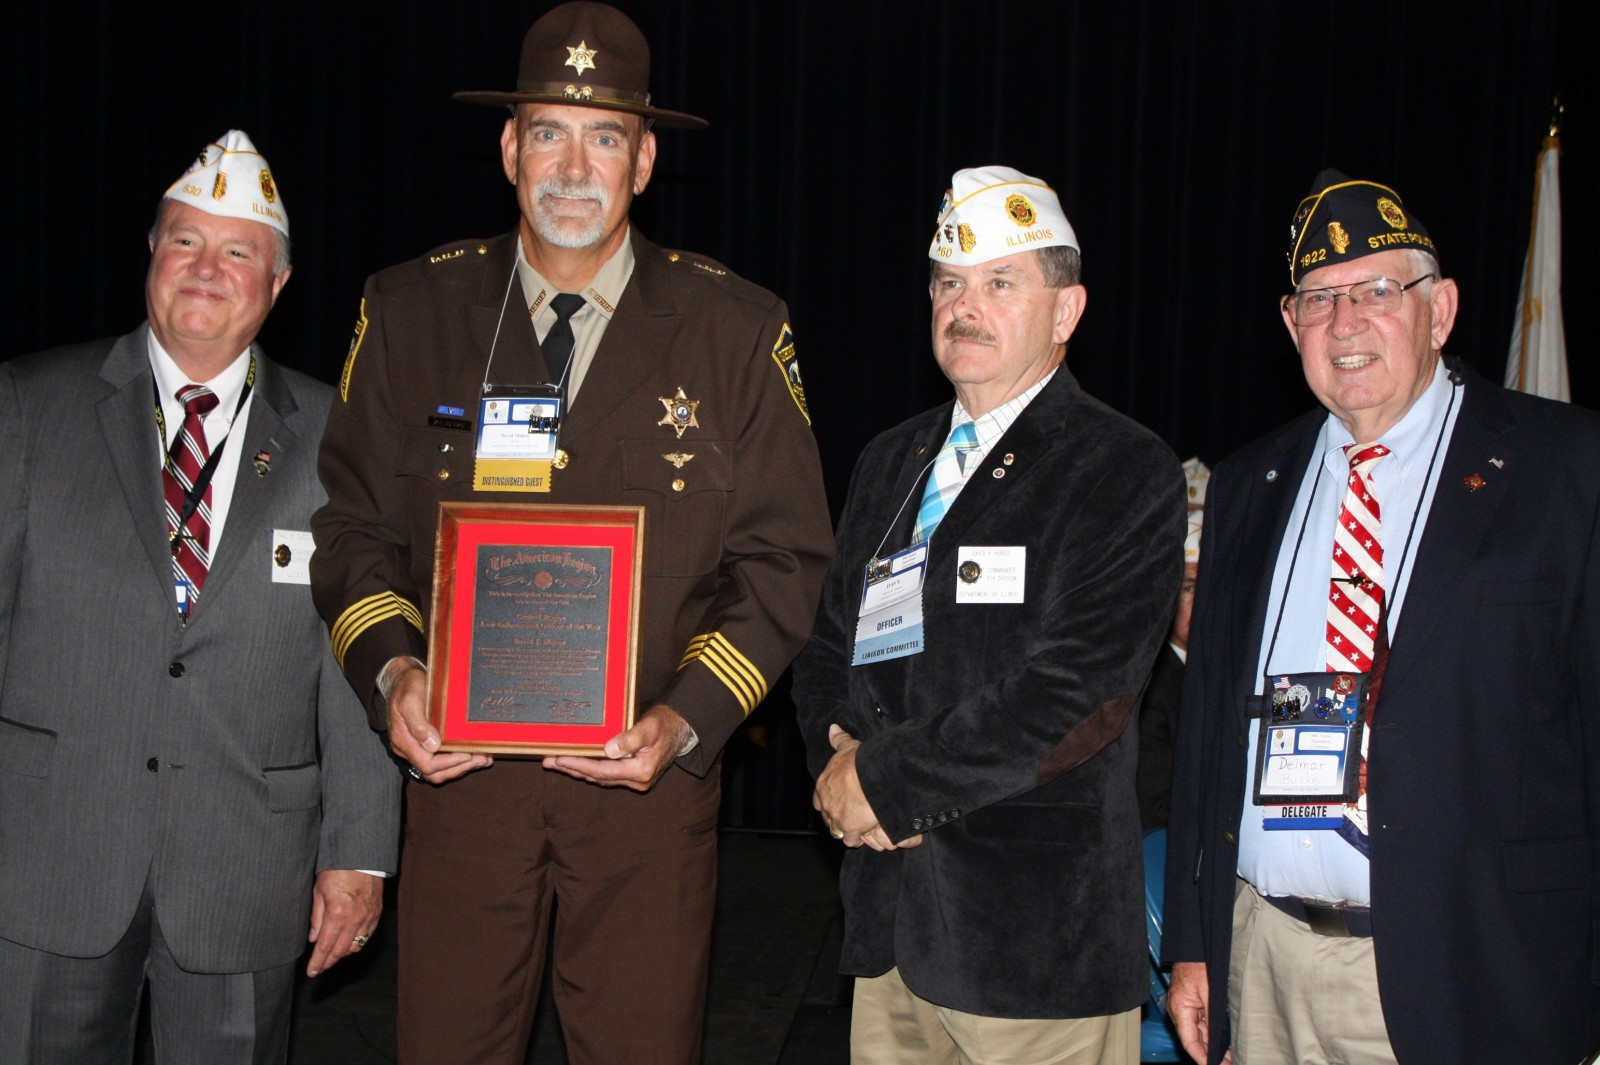 Pictured left to right: American Legion Illinois State Commander, Paul Gardner, Effingham County Sheriff Dave Mahon, 5th Division Commander and Vice-Chairman of Safety, Law and Order Committee, Dave Harris, and the Chairman of the Safety, Law and Order Committee, Delmar Buske.